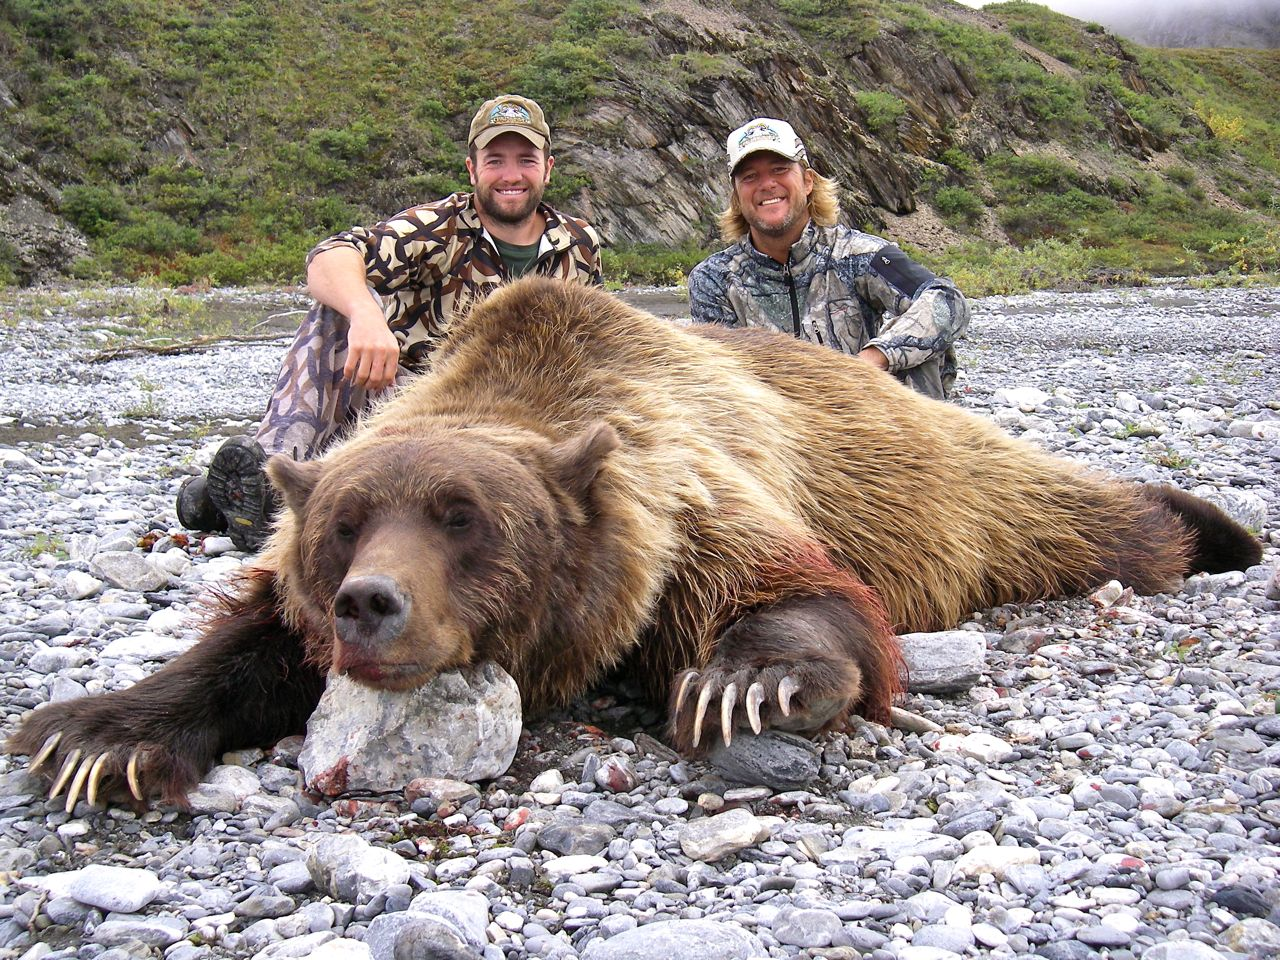 This Is An 8u00273u2033 B U0026 C Grizzly Boar Also Taken From The Arctic.